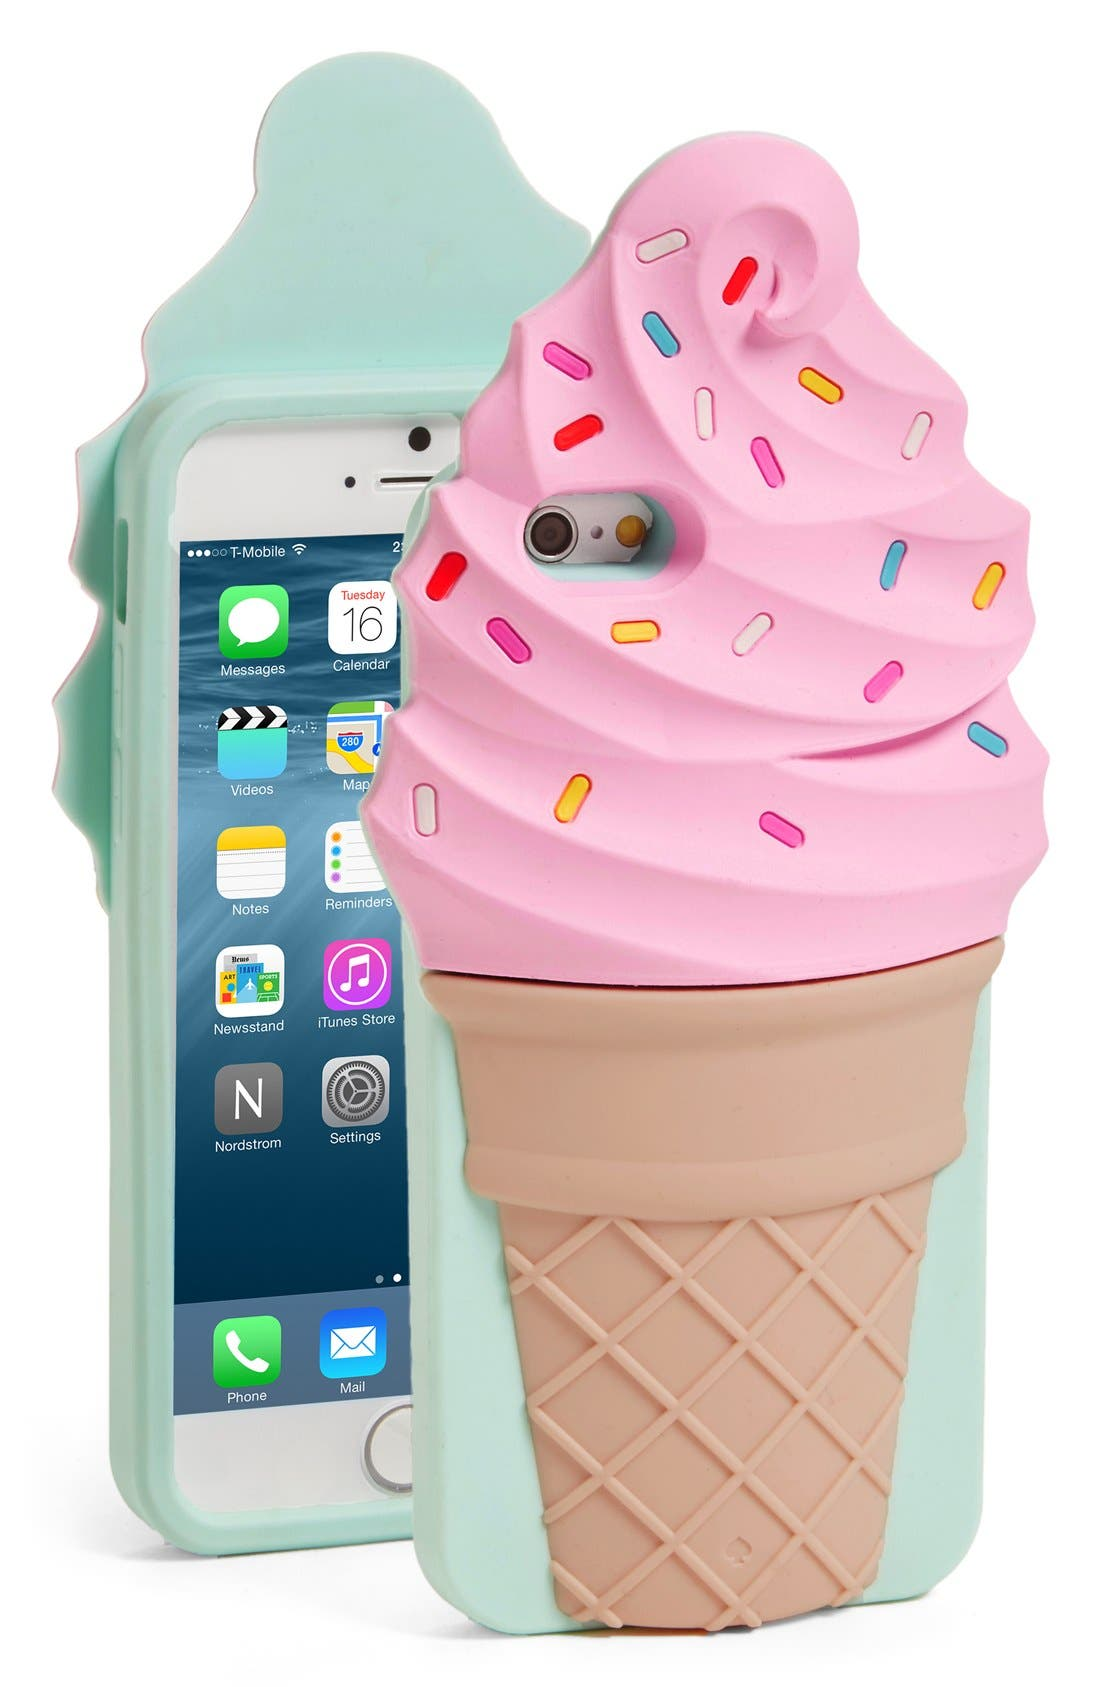 Main Image - kate spade new york 'ice cream' iPhone 6 & 6s case